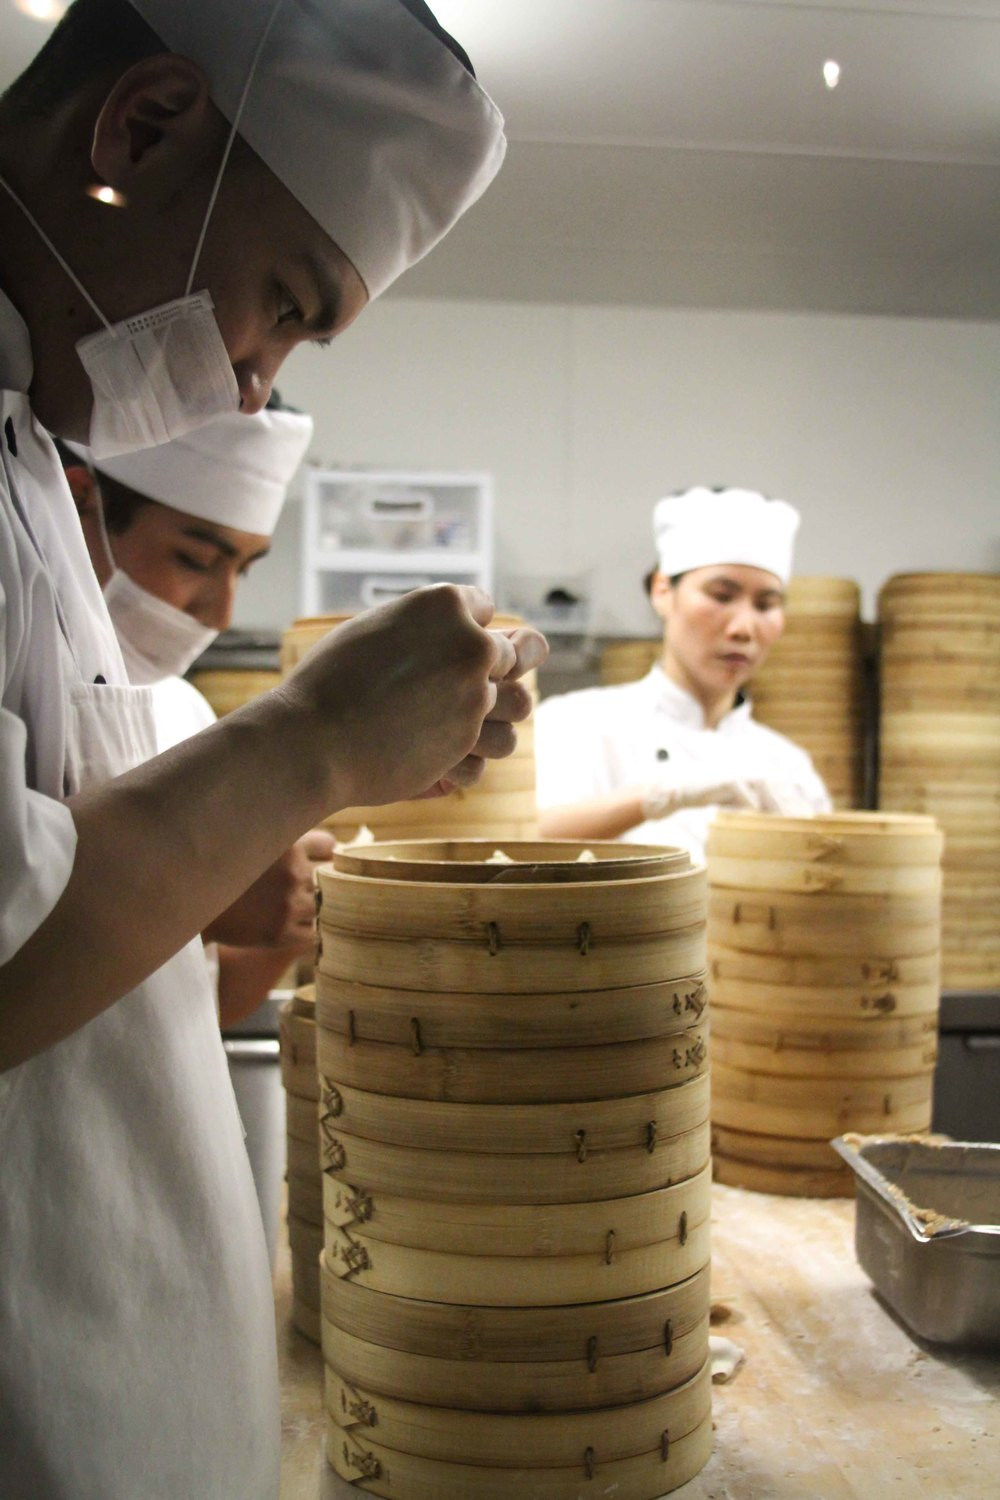 Din Tai Fung dumpling makers hard at work